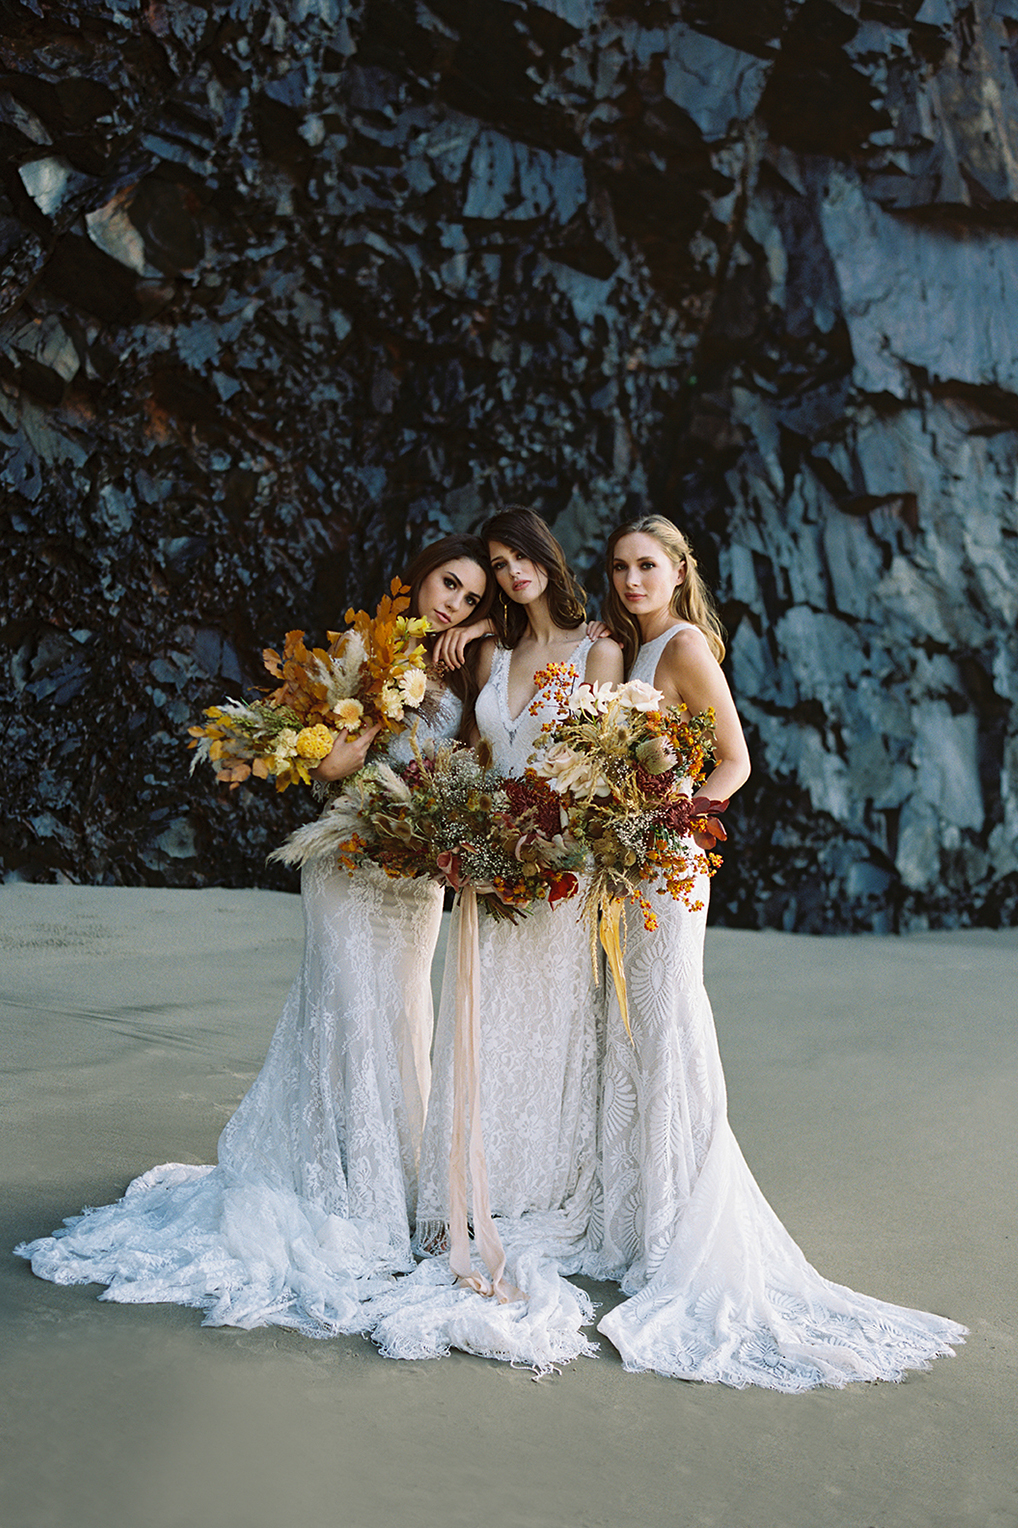 Allure Bridal's Dreamy Boho Wilderly Bride Wedding Dress Collection (And Giveaway!) | Brumwell Wells Photography 2